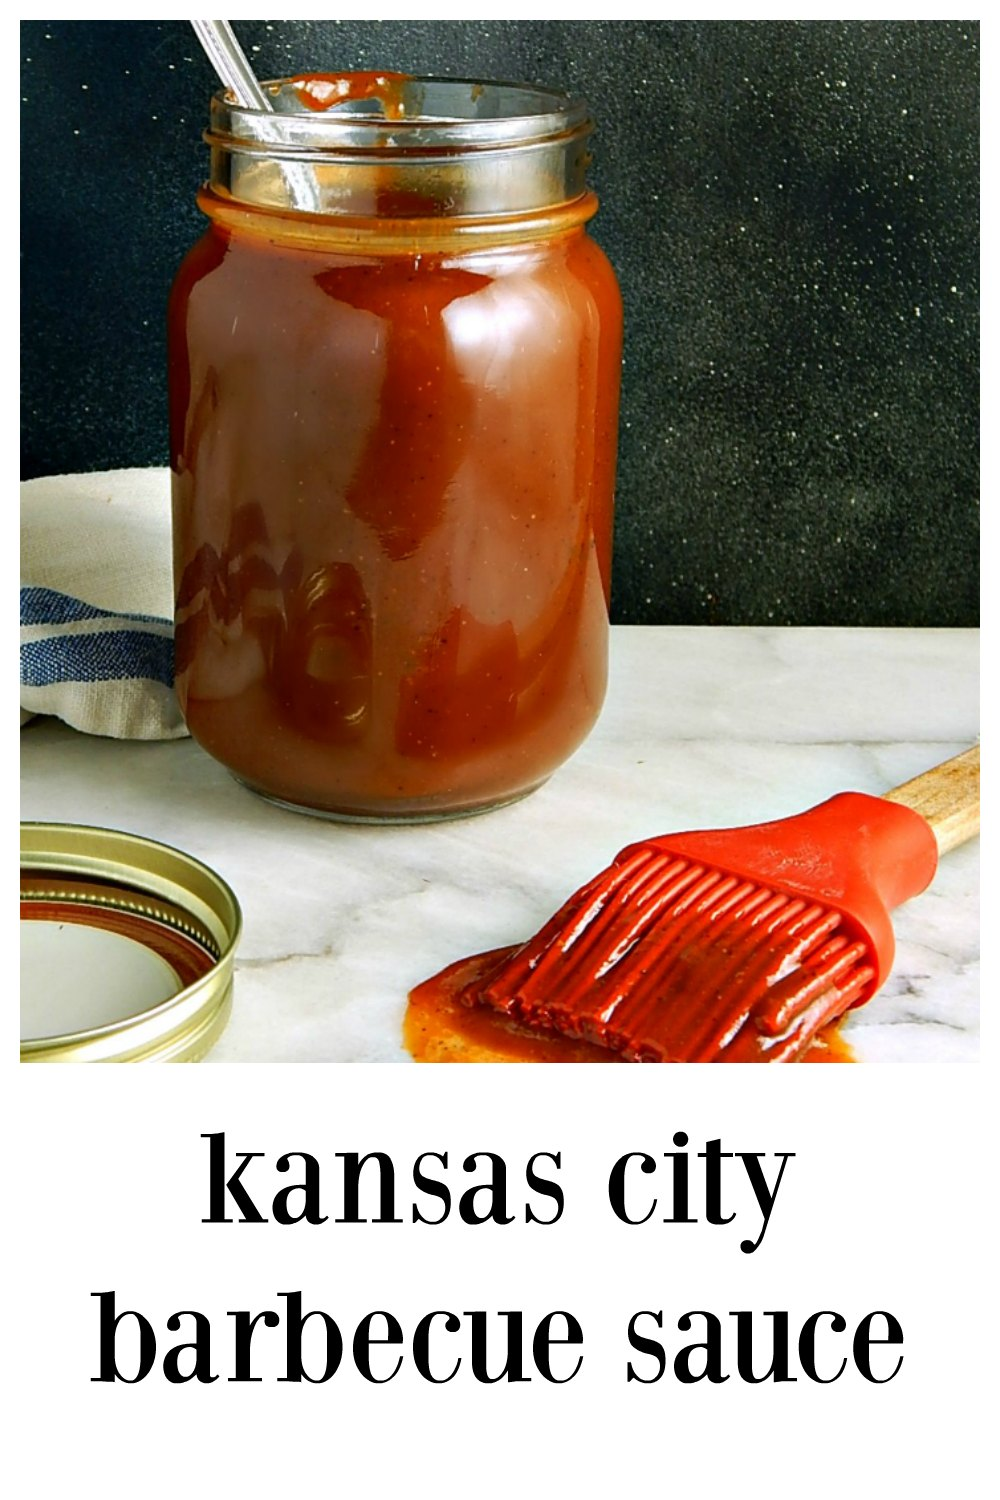 Your homemade Kansas City Barbecue Sauce is fresh & tangy, sweet, thick but with a bit of spice to keep it interesting. Put that #*&$#* on everything! Easy to make just use a Dutch oven to capture any splatters! #HomemadeBarbecueSauce #KansasCityBarbecueSauce #HomemadeBBQSauce #KansasCityBBQSauce